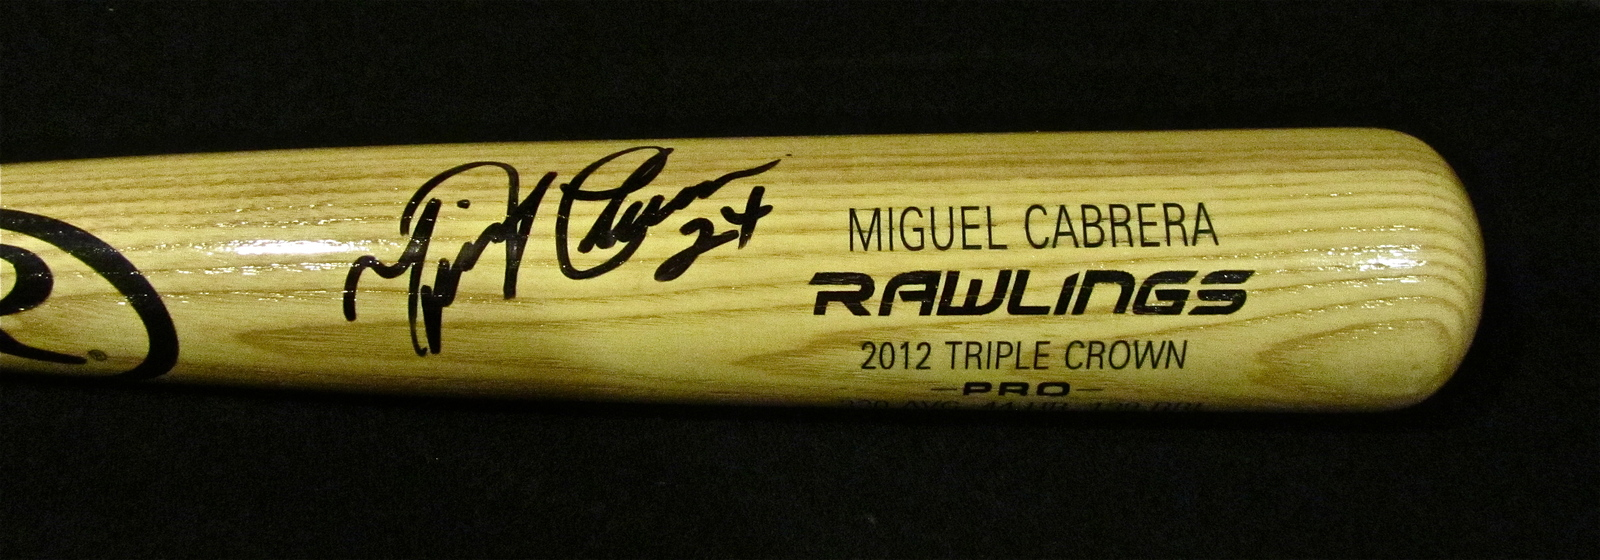 MIGUEL CABRERA AUTOGRAPHED SIGNED RAWLINGS BASEBALL BAT TIGERS TRIPLE CROWN COA